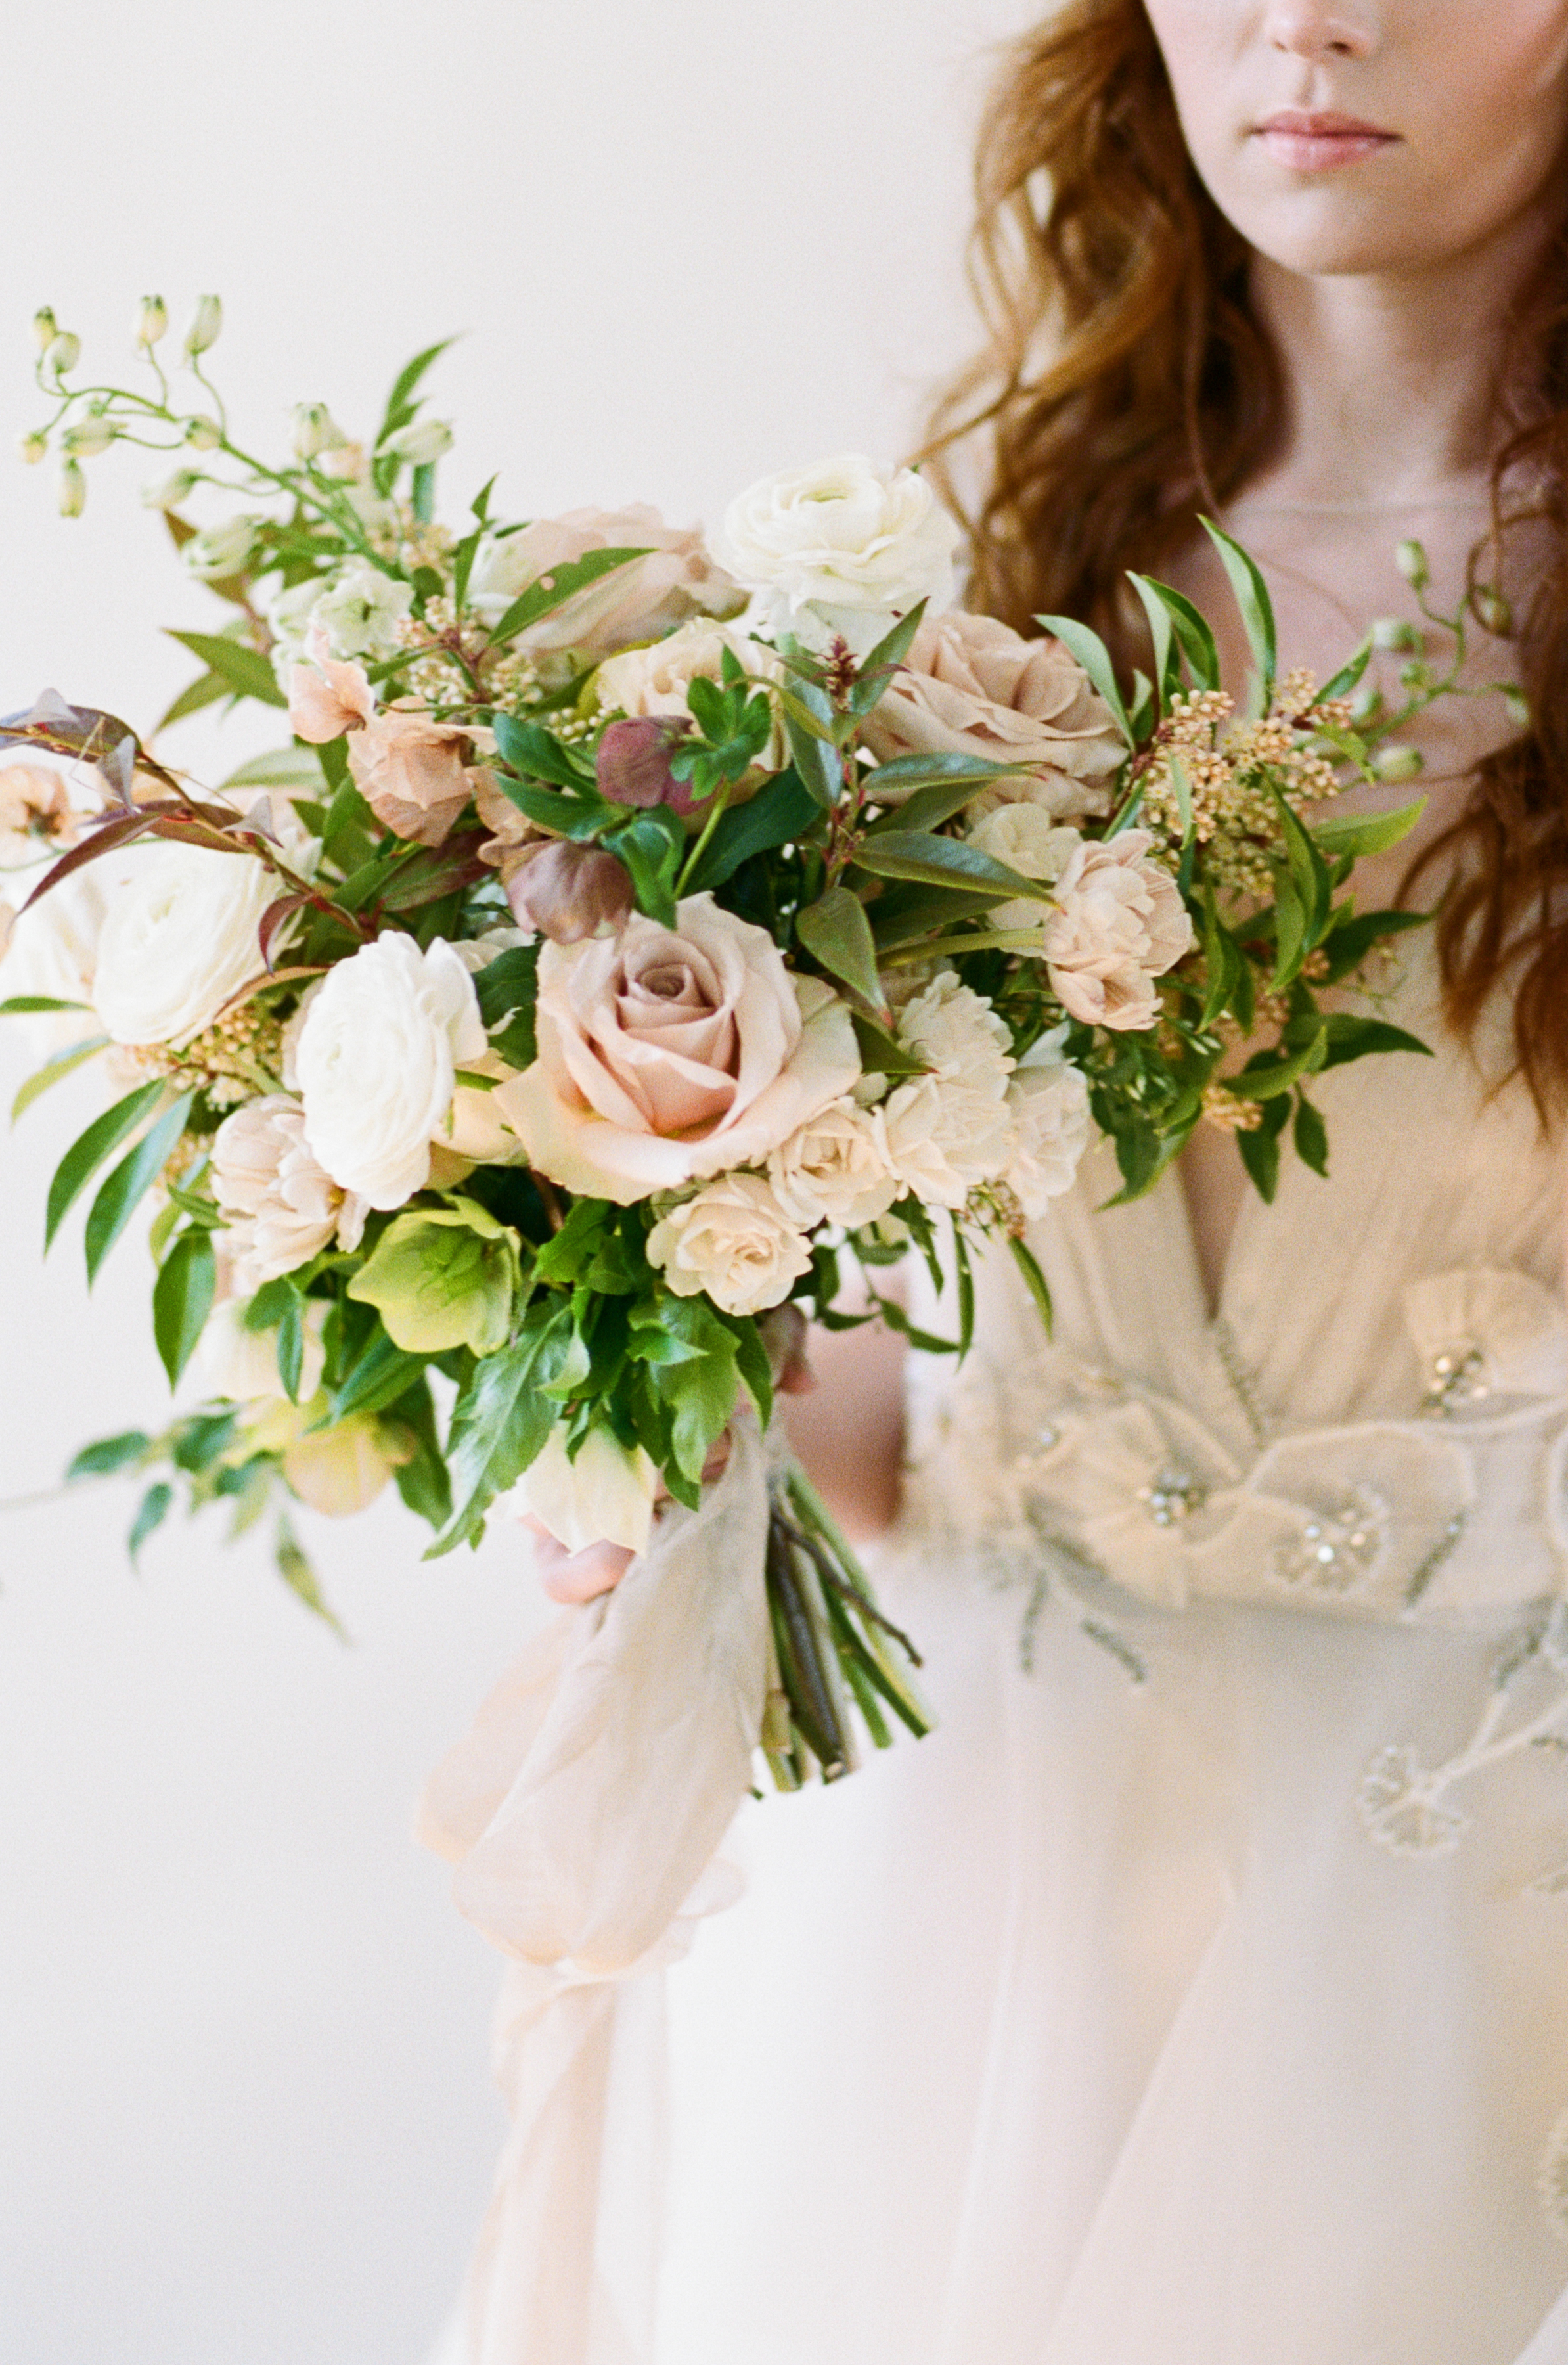 flowers_bouquet_bridal_floridesigns_wedding  (6 of 58).jpg